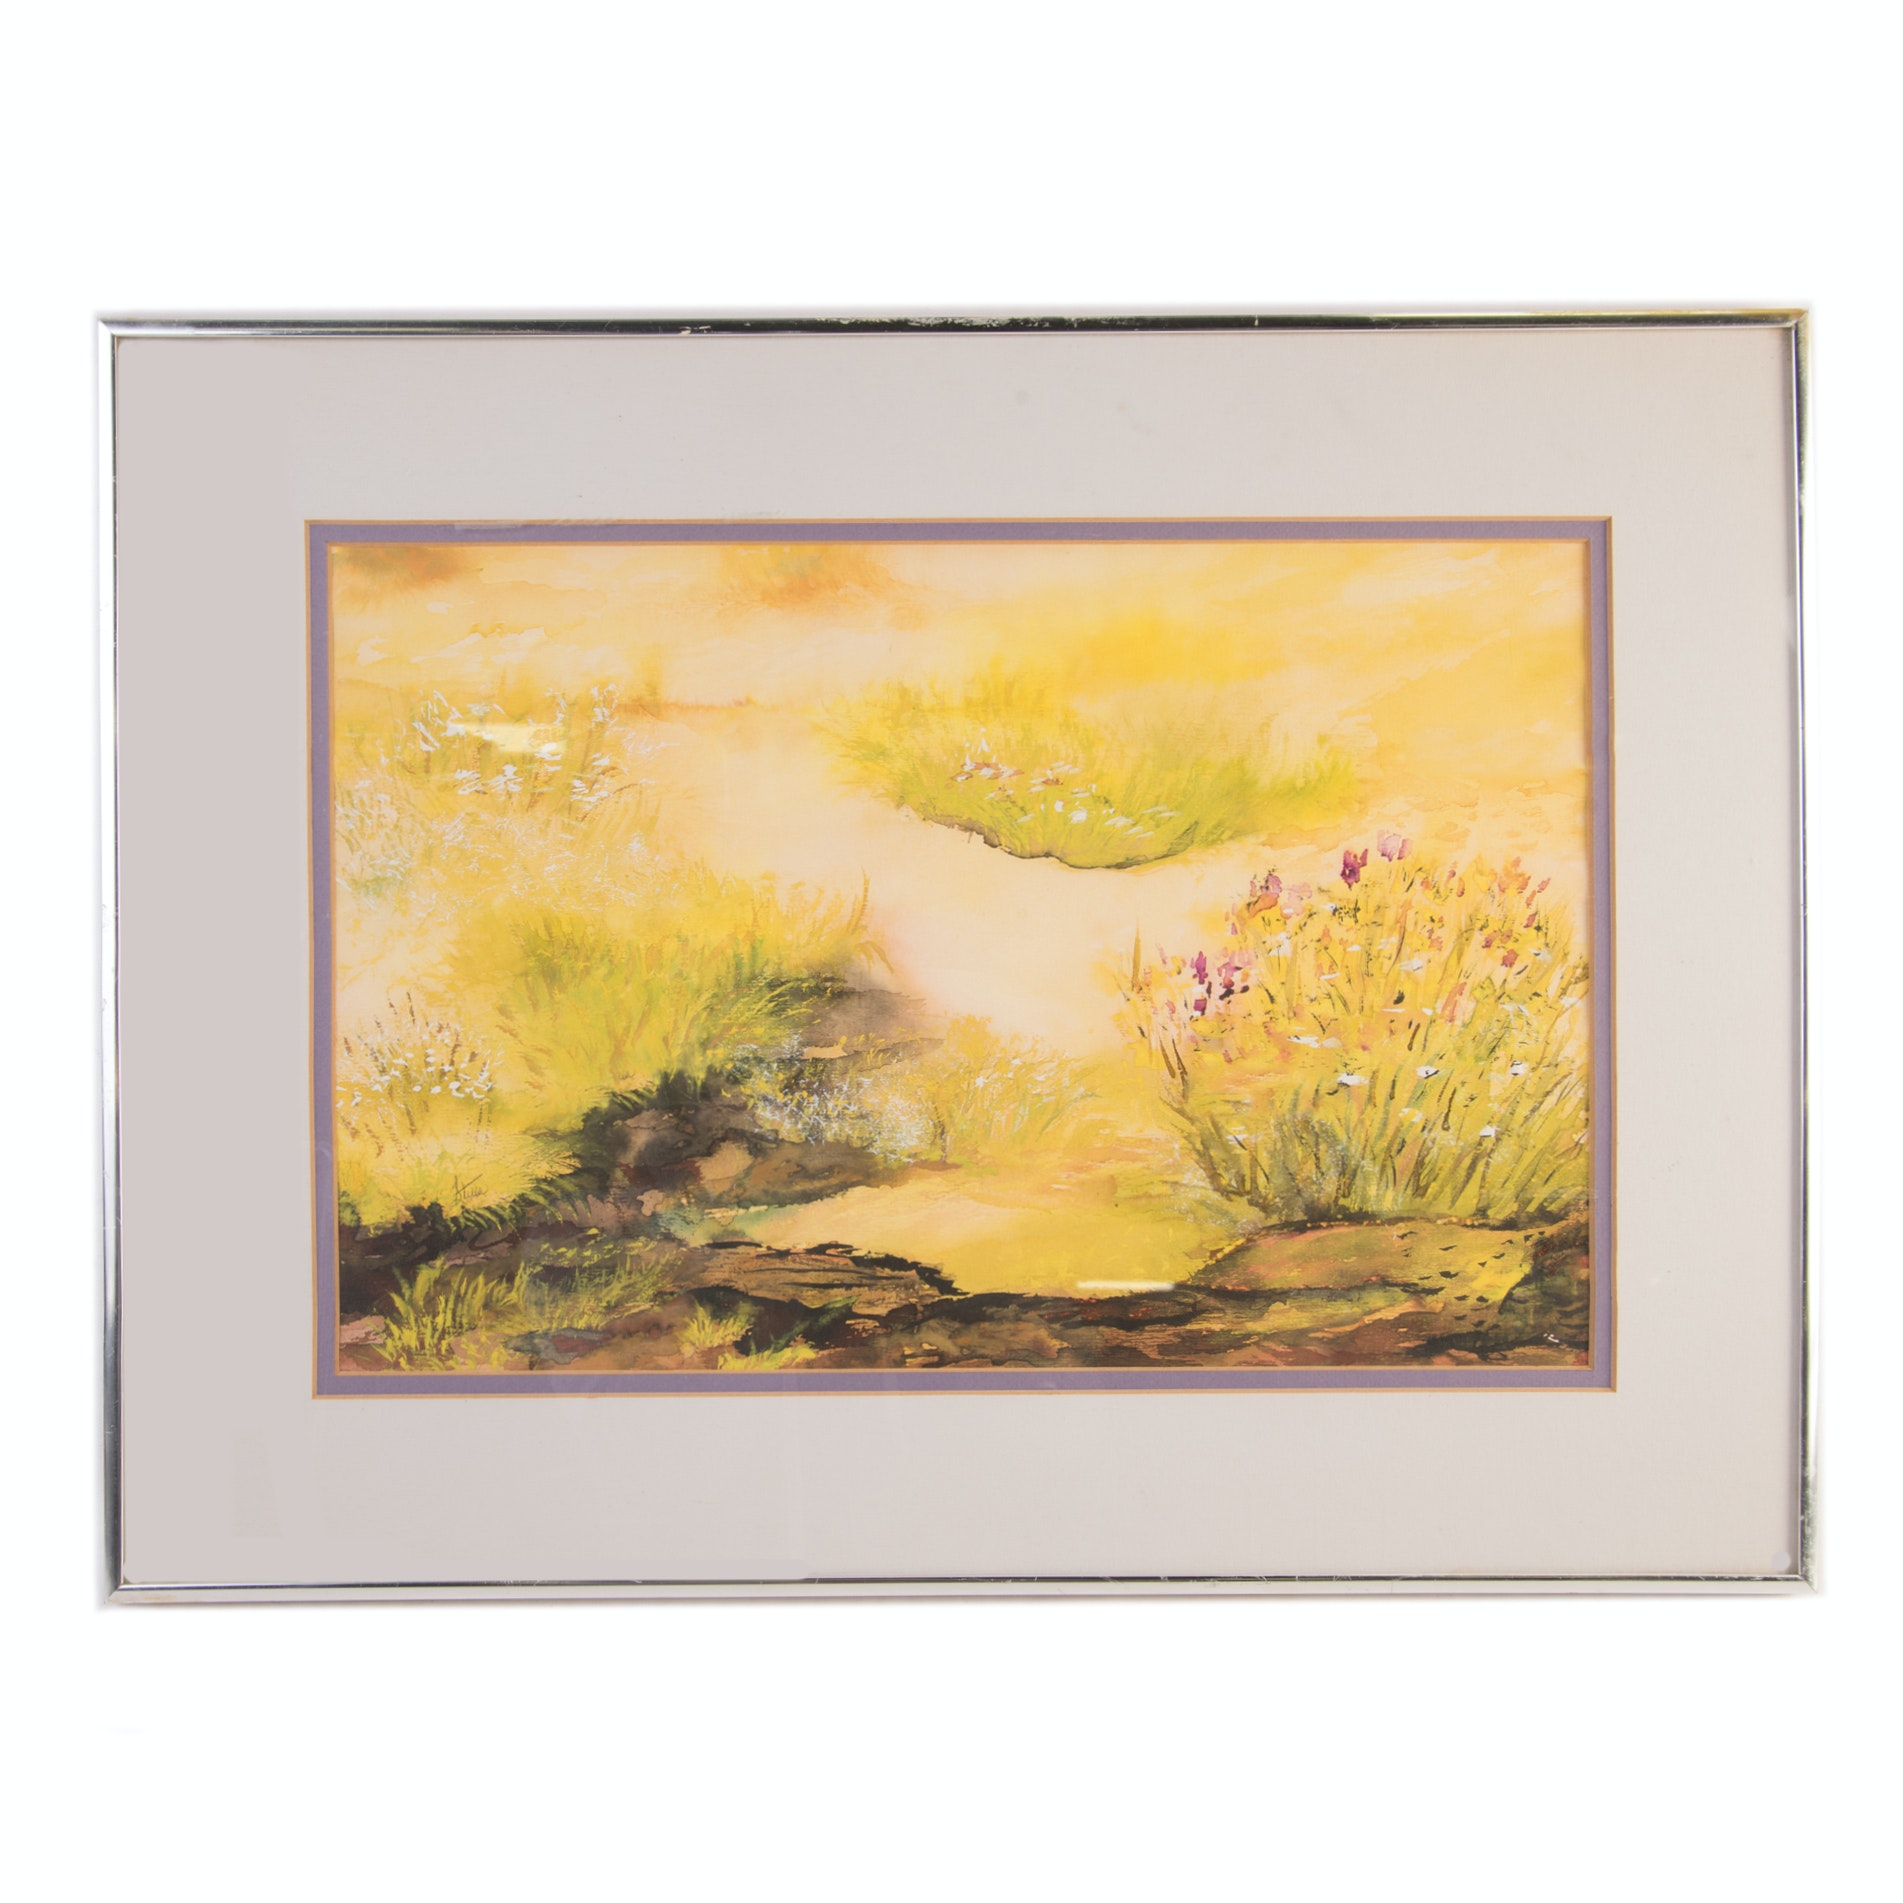 Original Watercolor on Paper of an Abstract Landscape